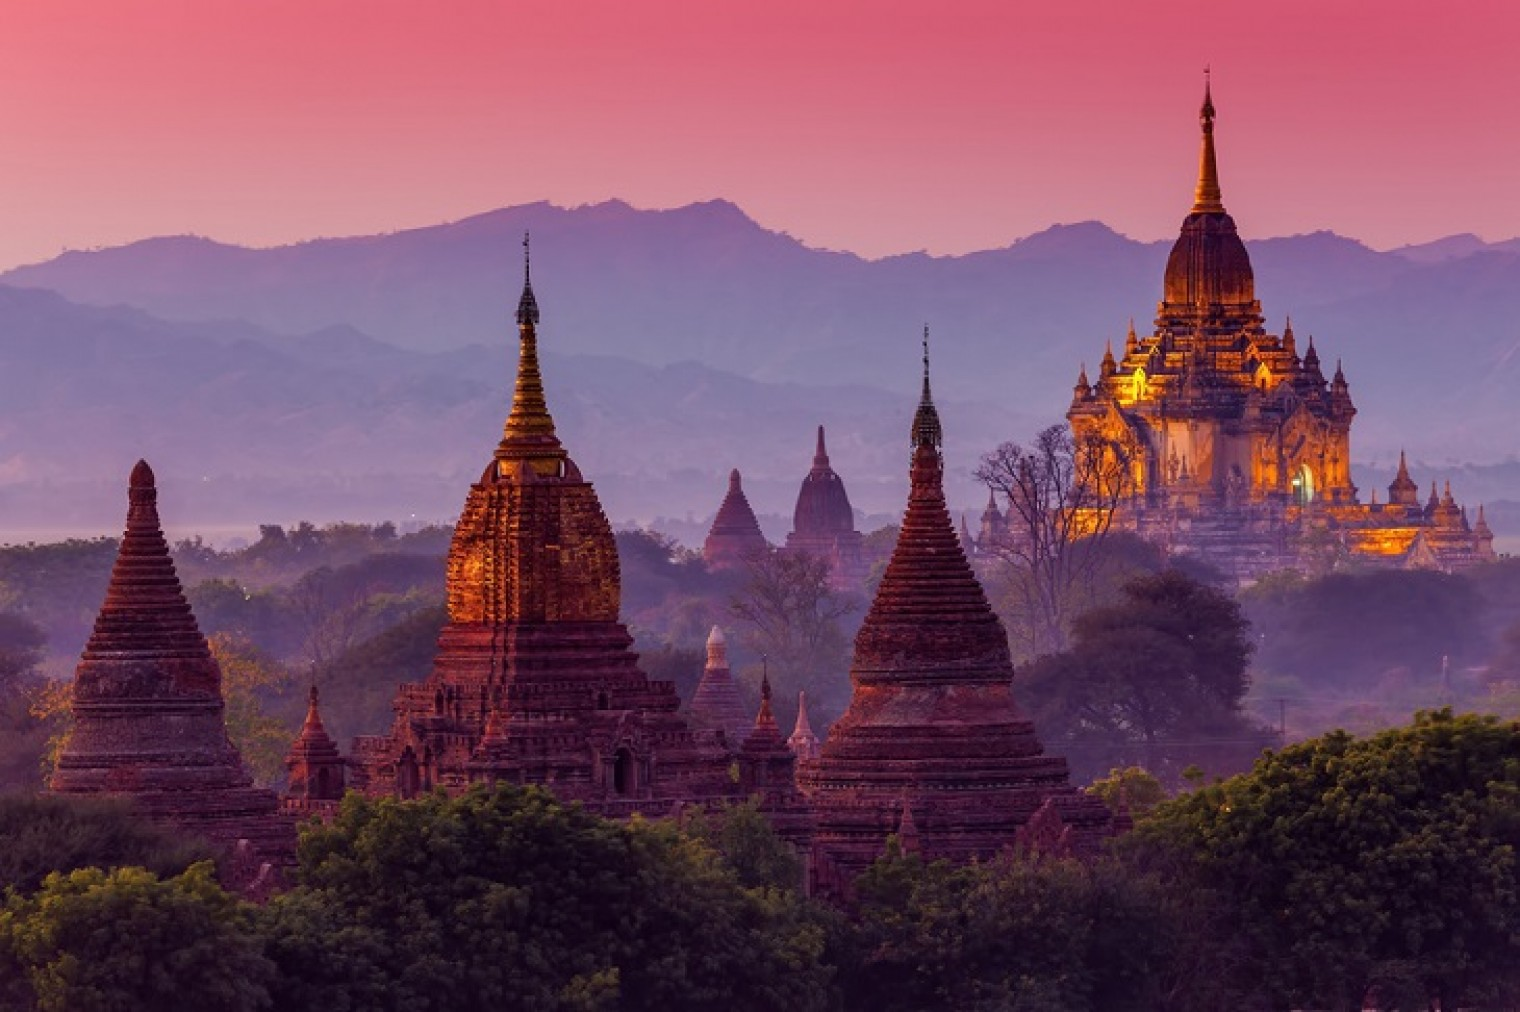 Must-sees in Myanmar